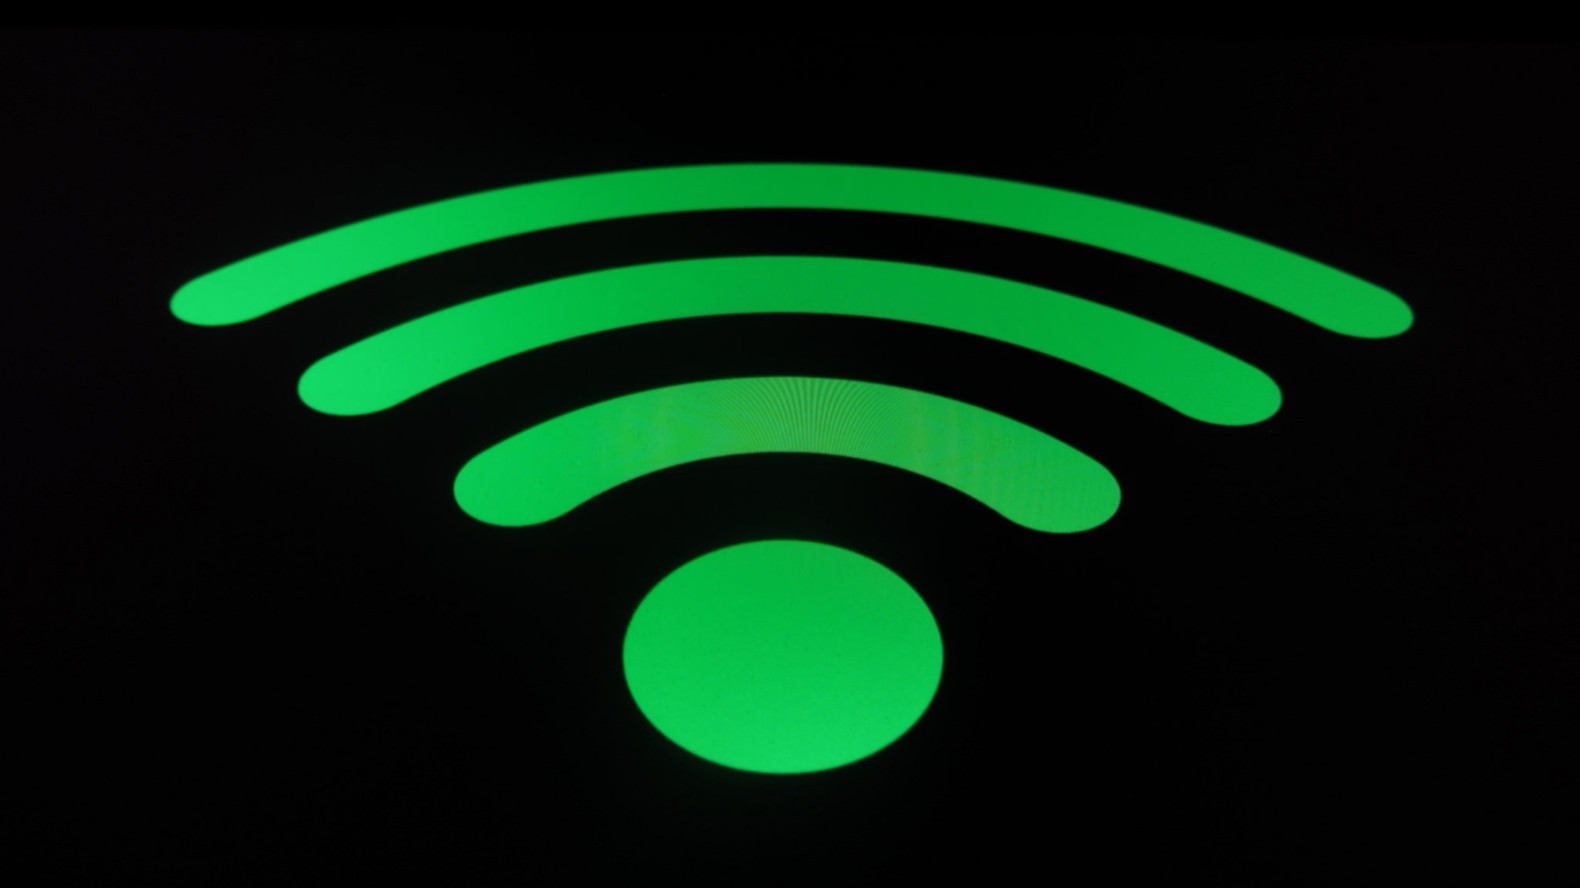 MIT develops new Wi-Fi that's 330% faster and twice as big as existing tech